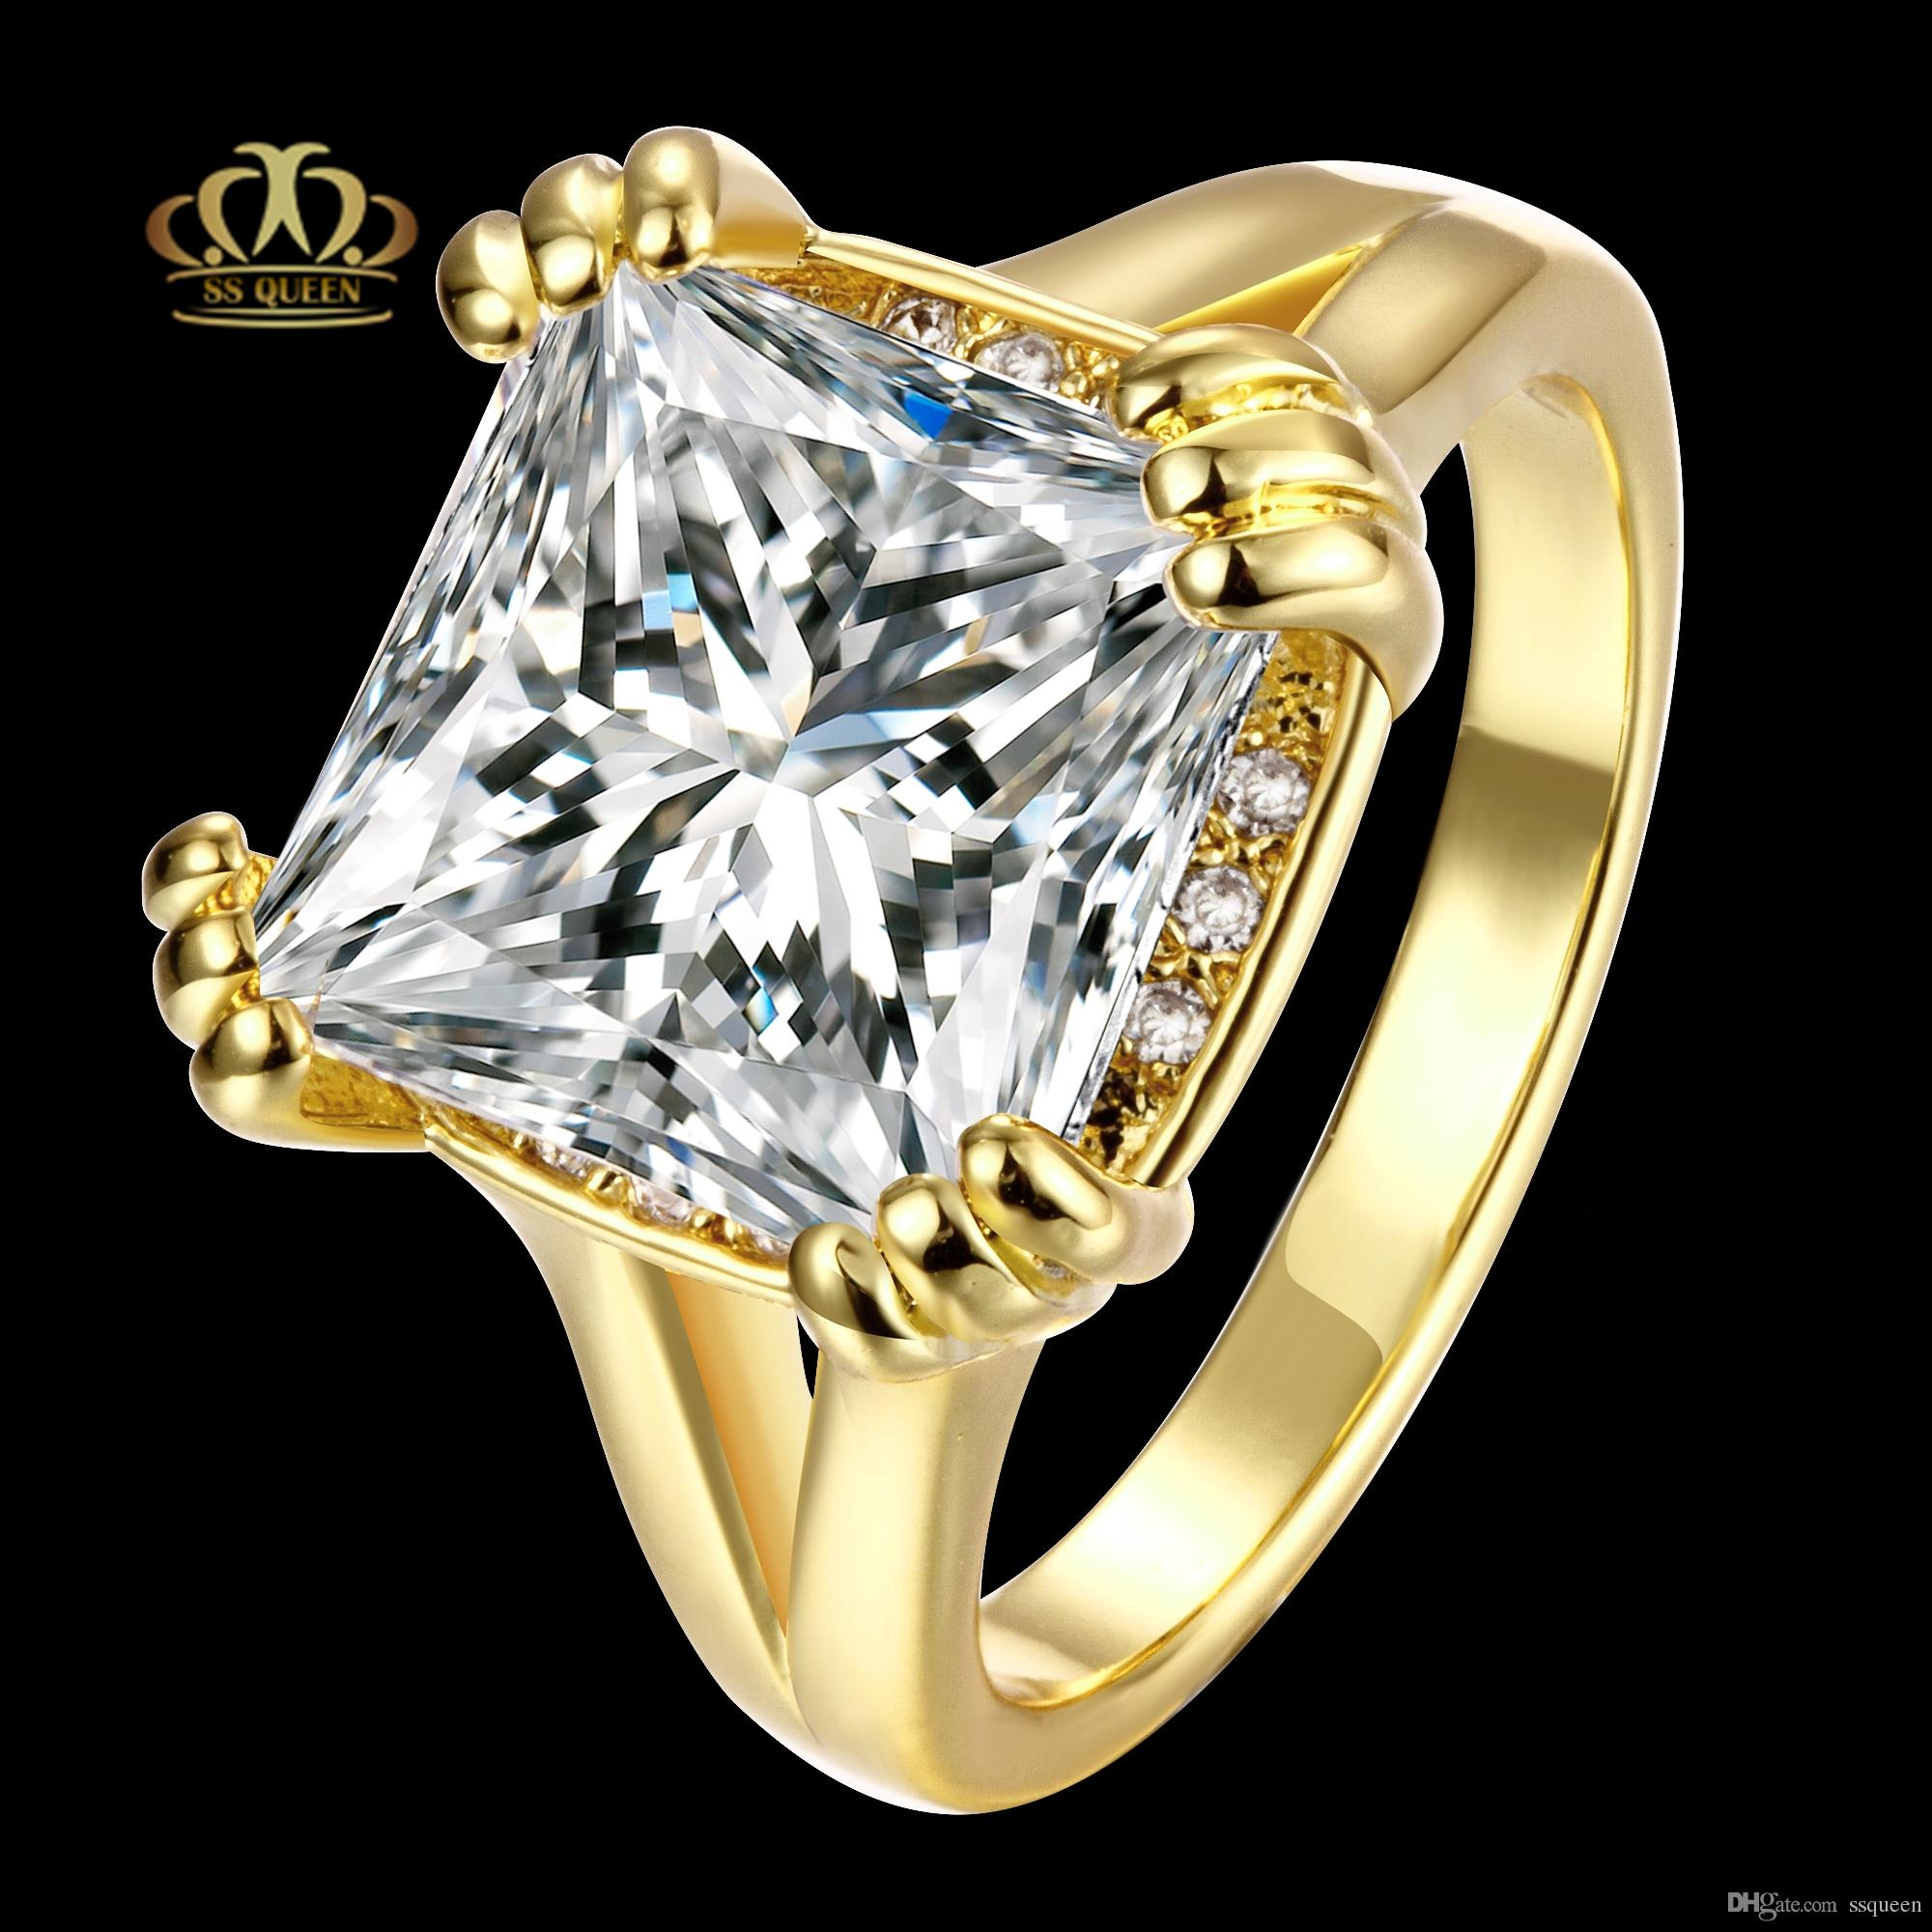 6347c362a8ab1 Top quality 18K gold/ rose gold Plated square princess cut solitary white  cz diamond engagement wedding Rings for women and men